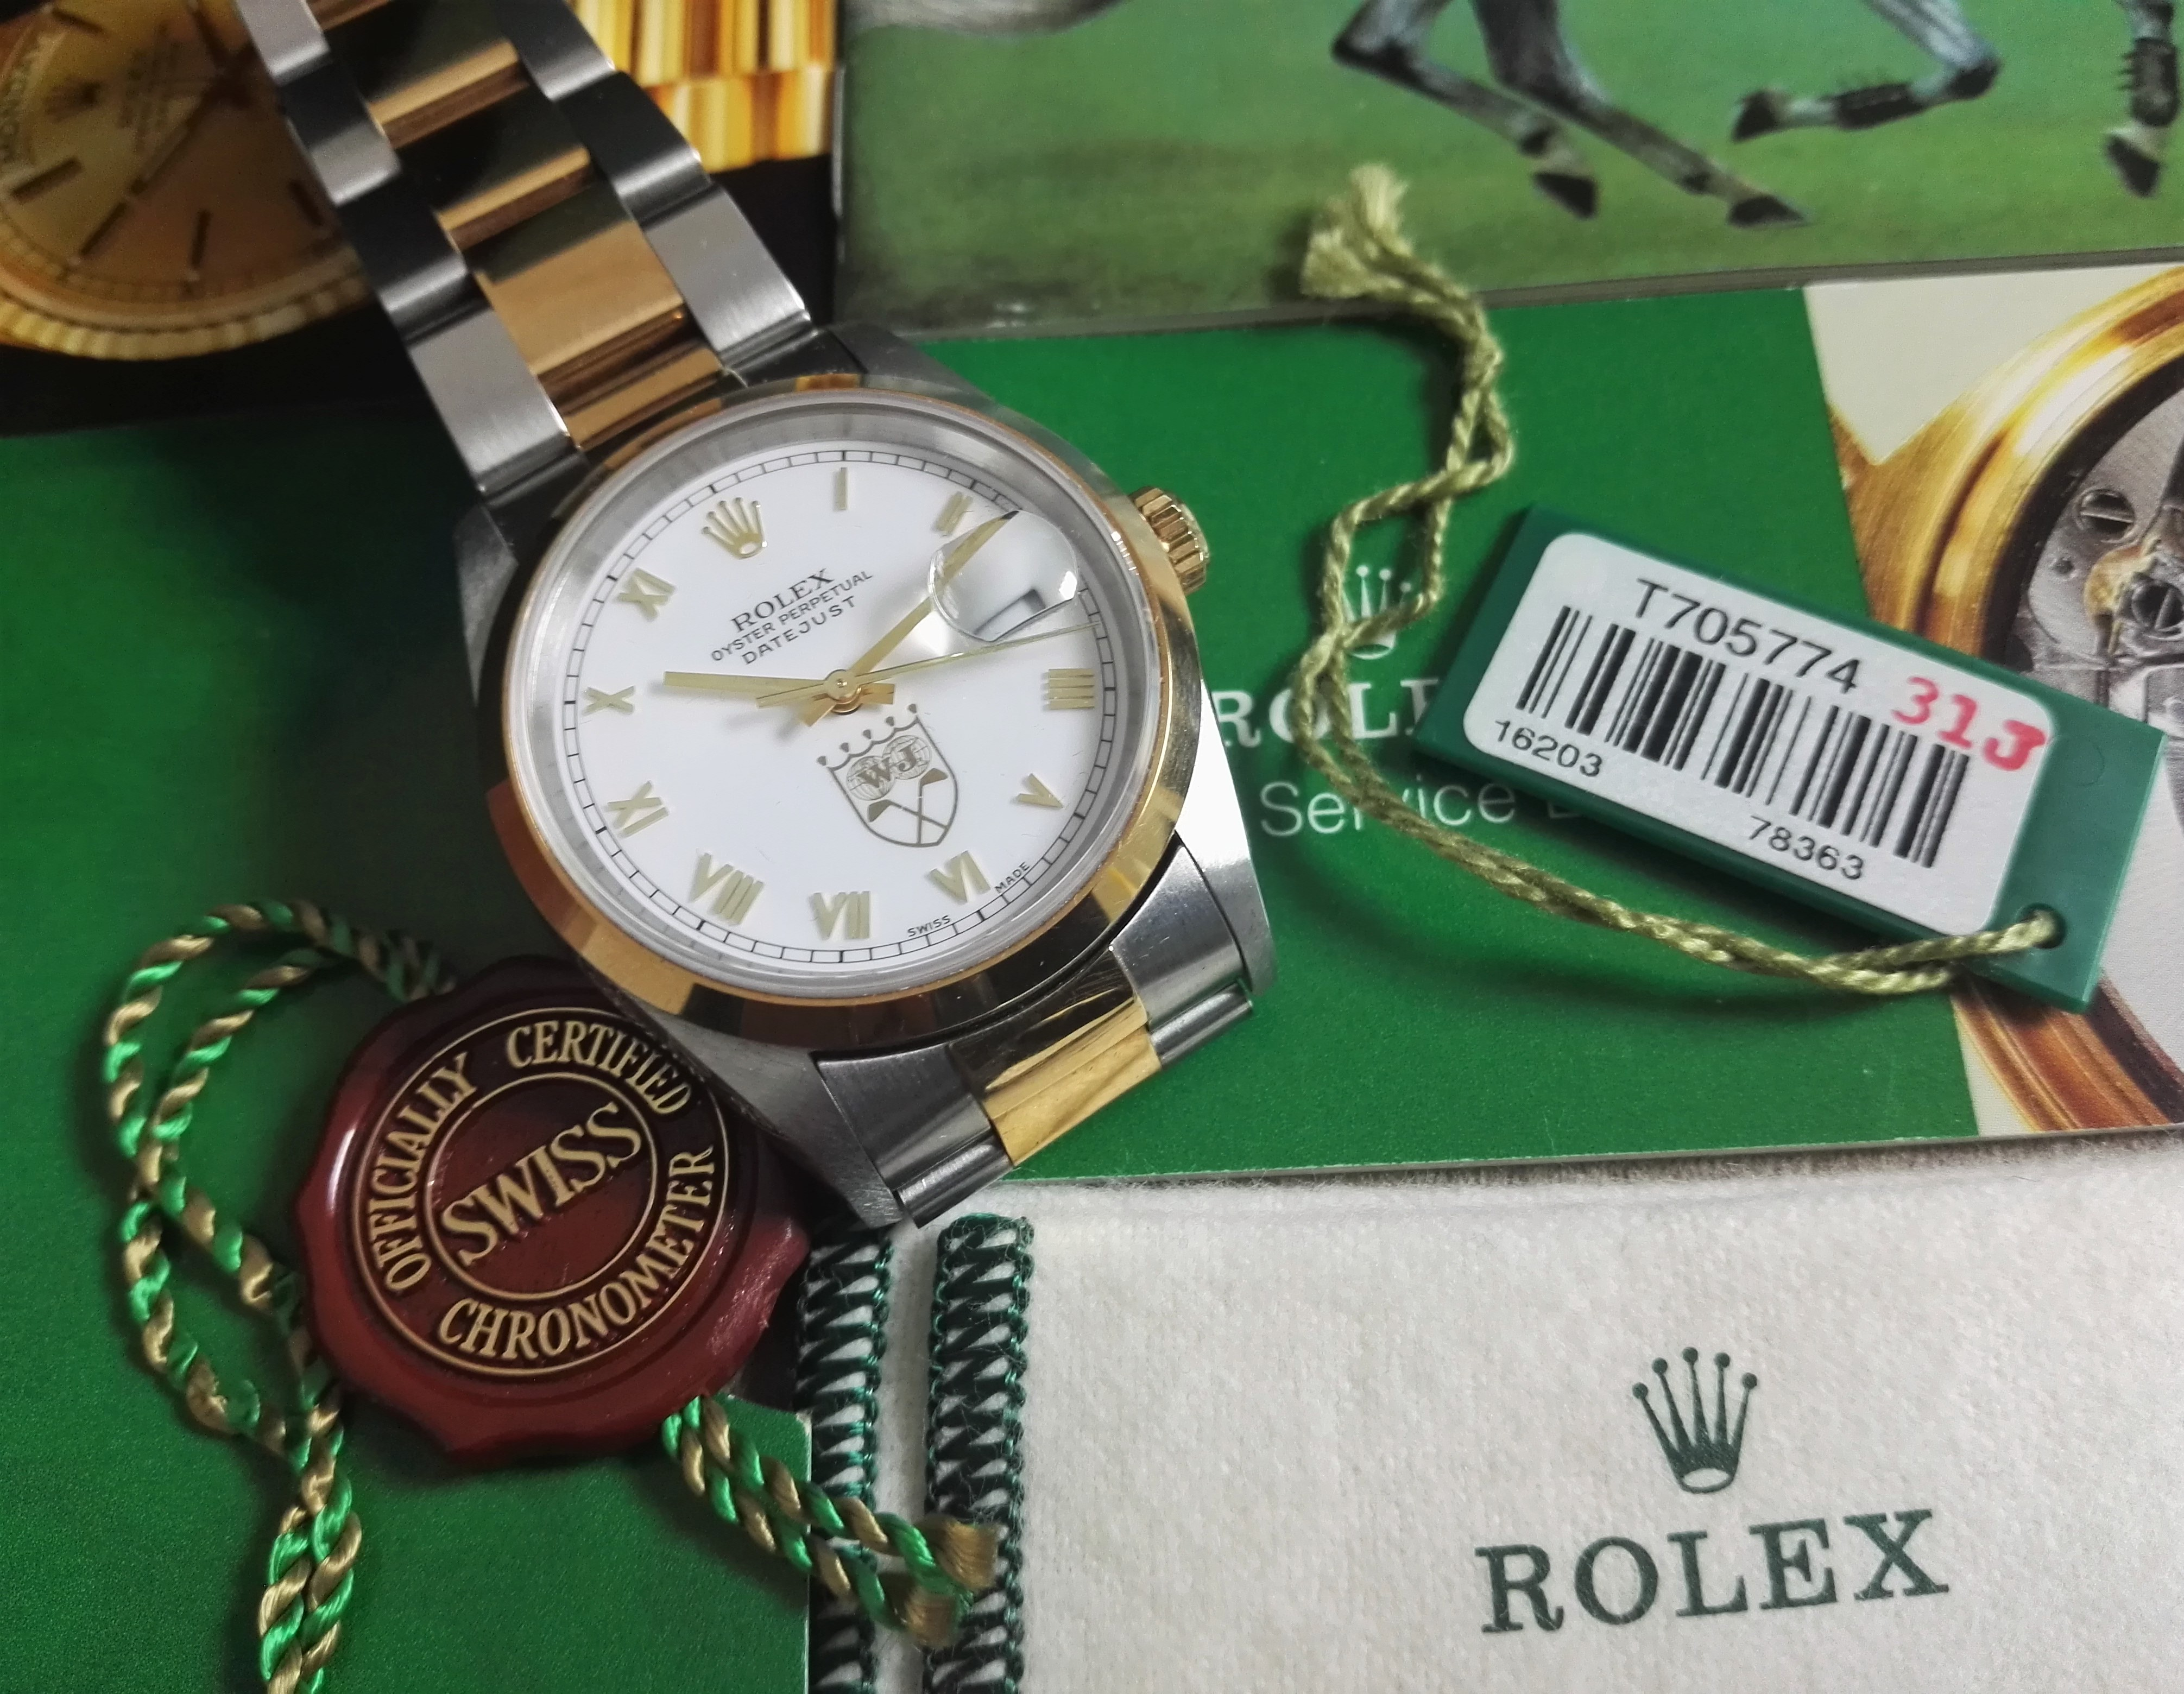 Rolex Datejust Datejust 16203 Nick Price - Limited Edition 200pz. full set | San Giorgio a Cremano